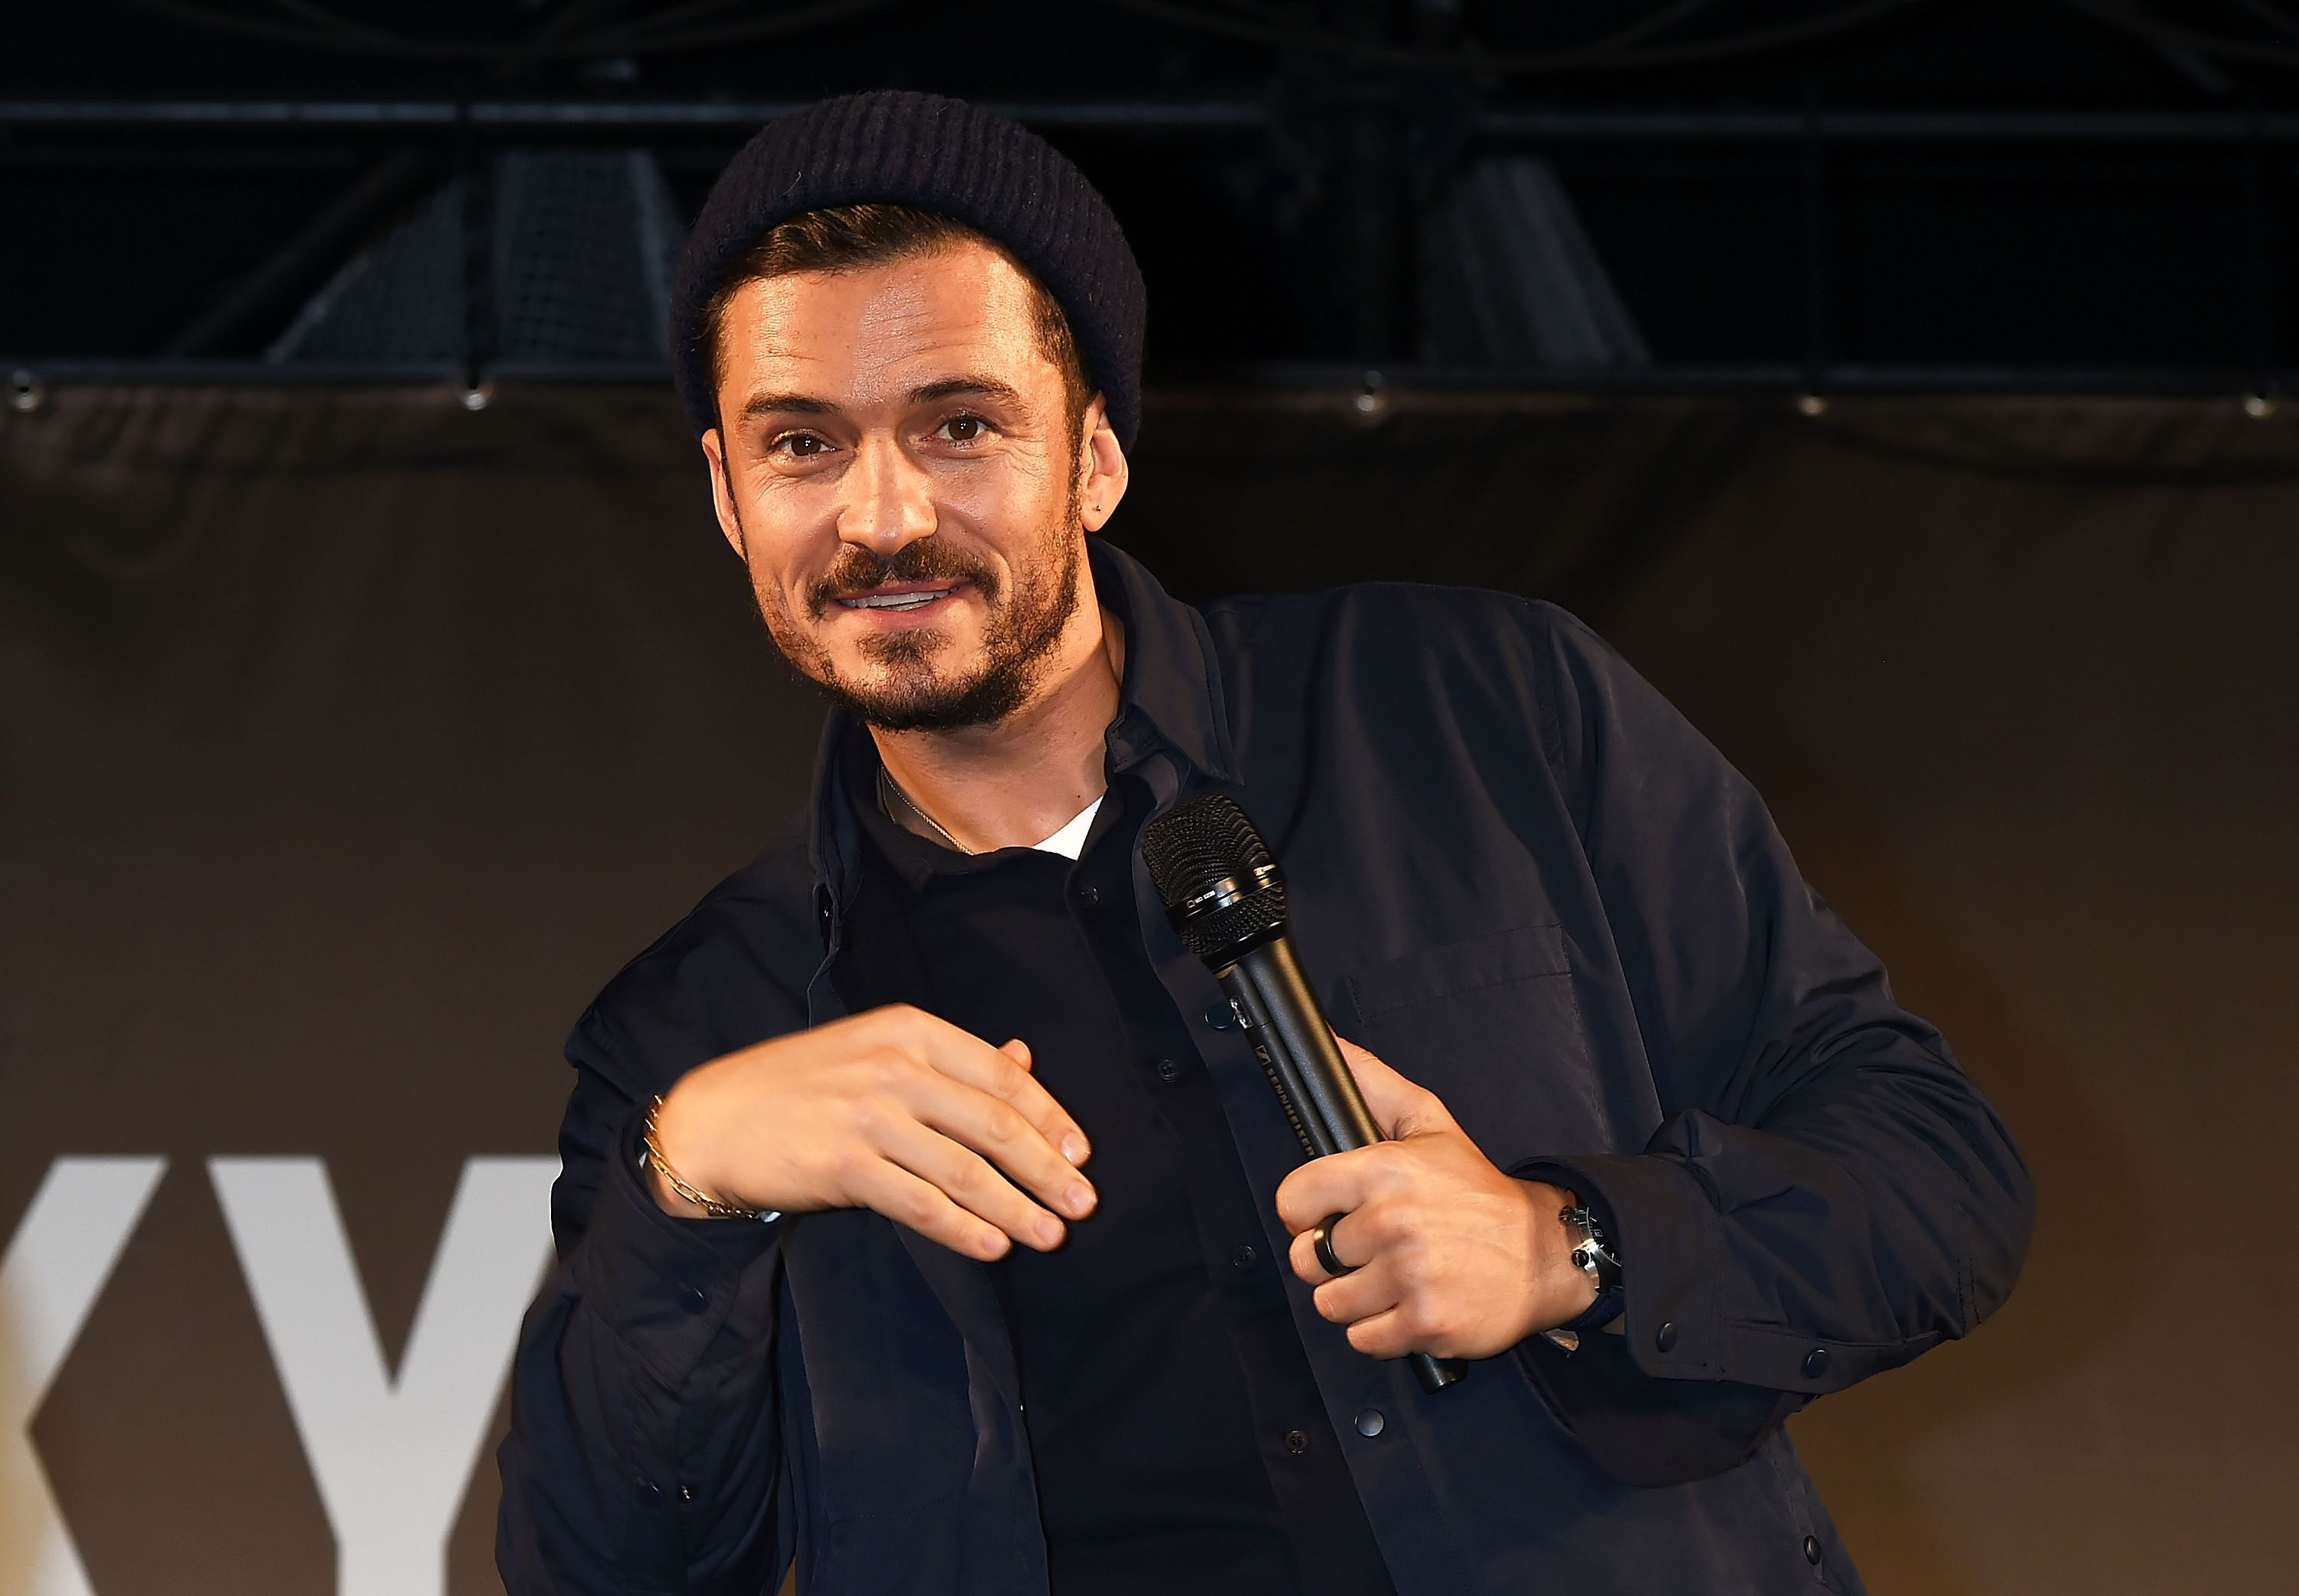 Orlando Bloom reveals he's corrected his tattoo after misspelling son's name